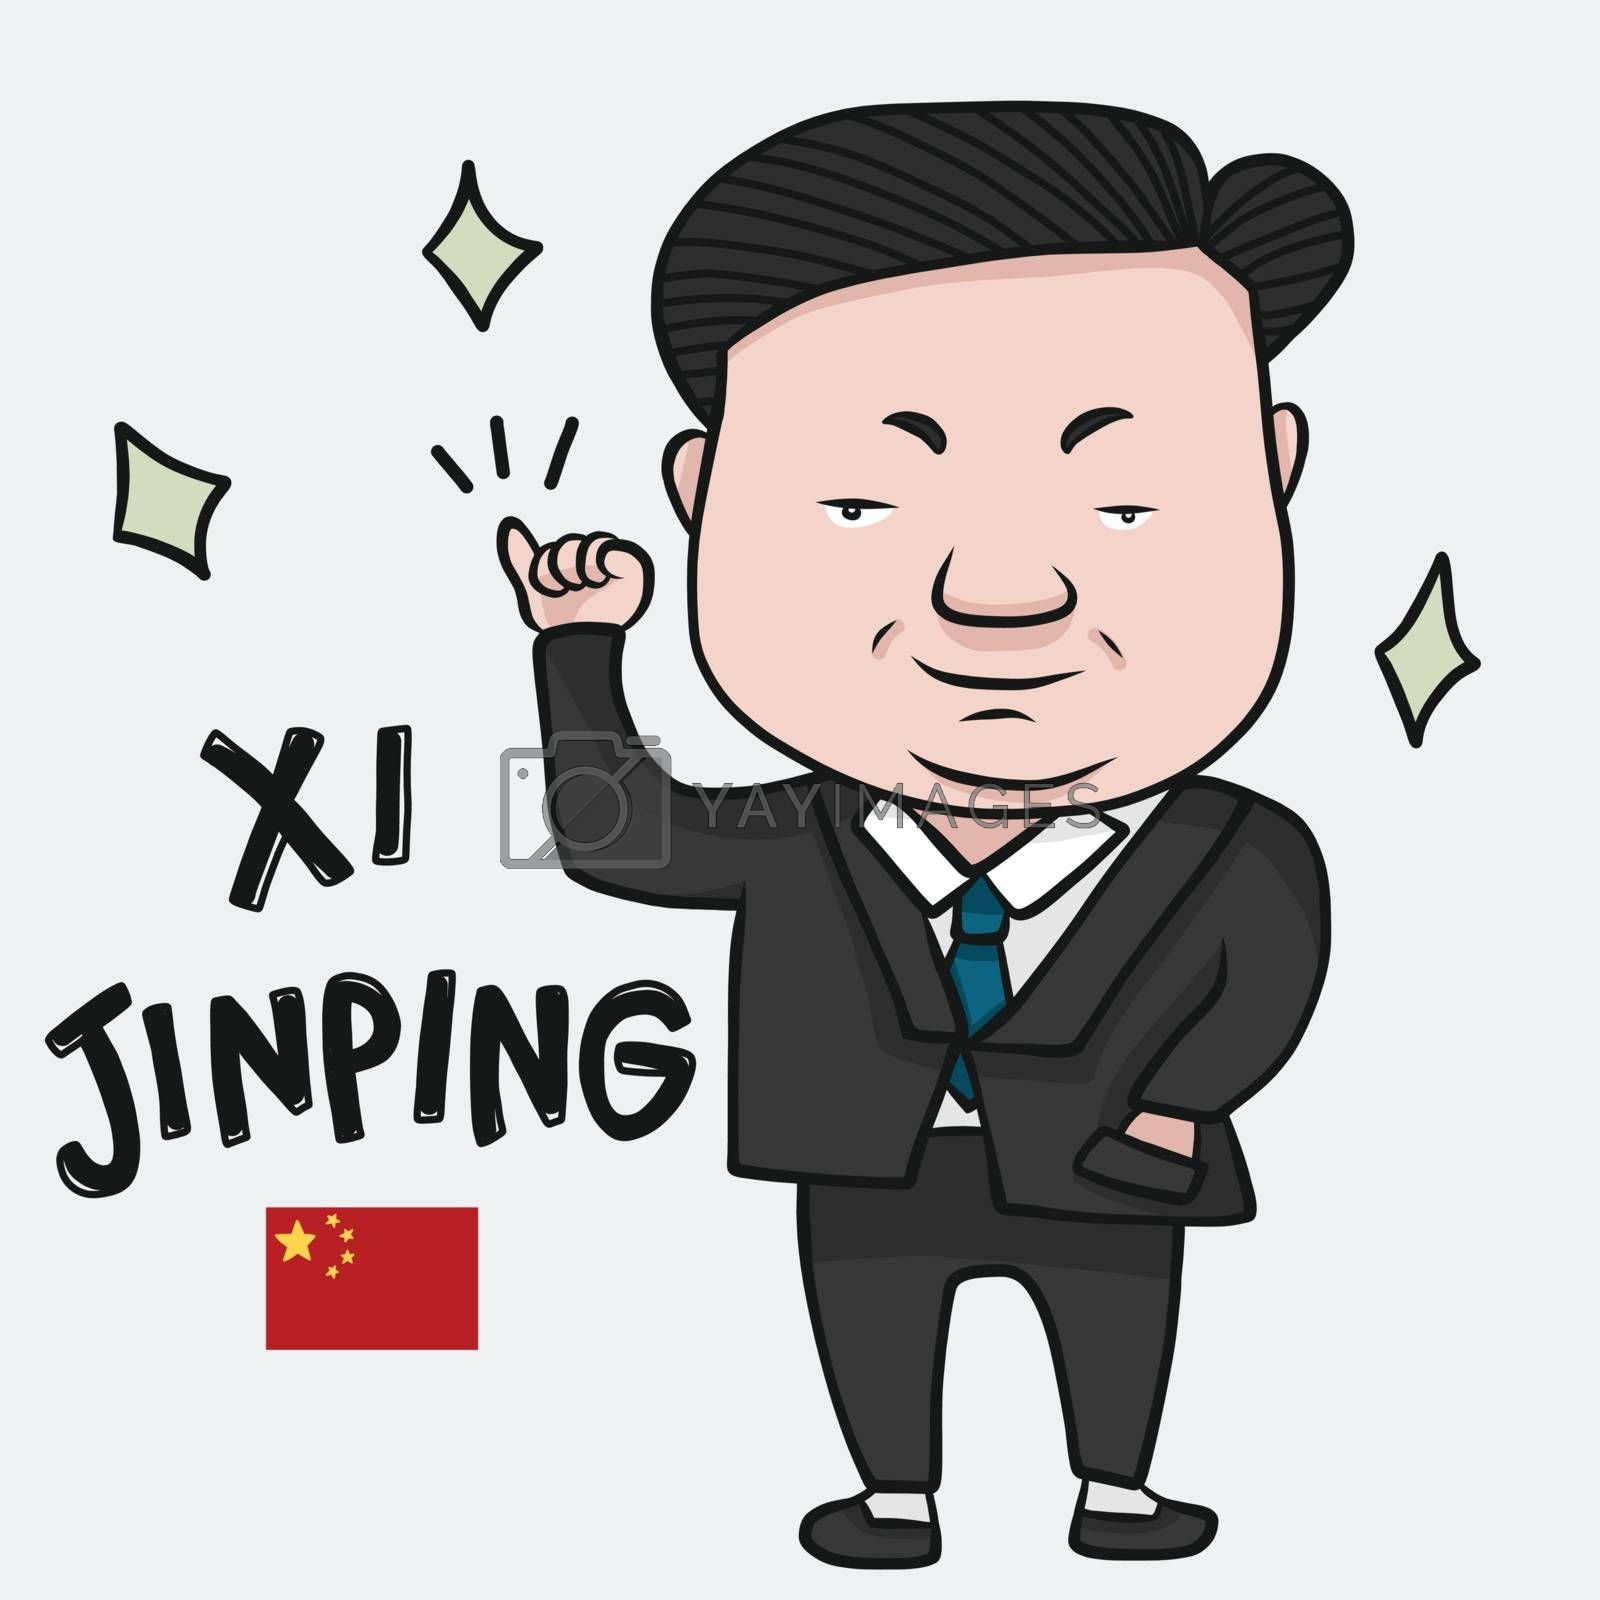 Xi Jinping cartoon Drawing editorial illustration, President of the People's Republic of China - Vector